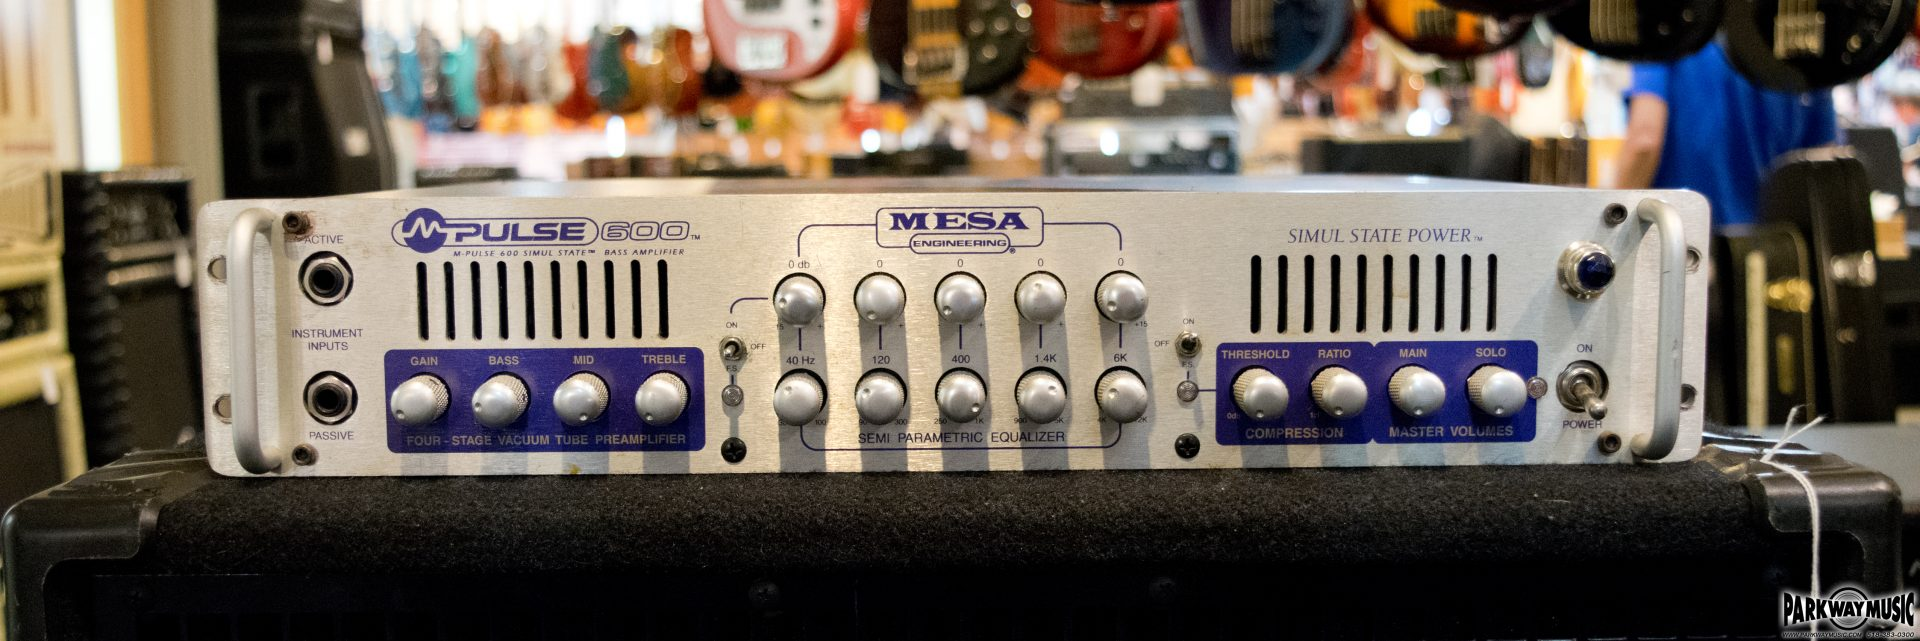 Mesa Boogie MPulse 600 Head (USED)